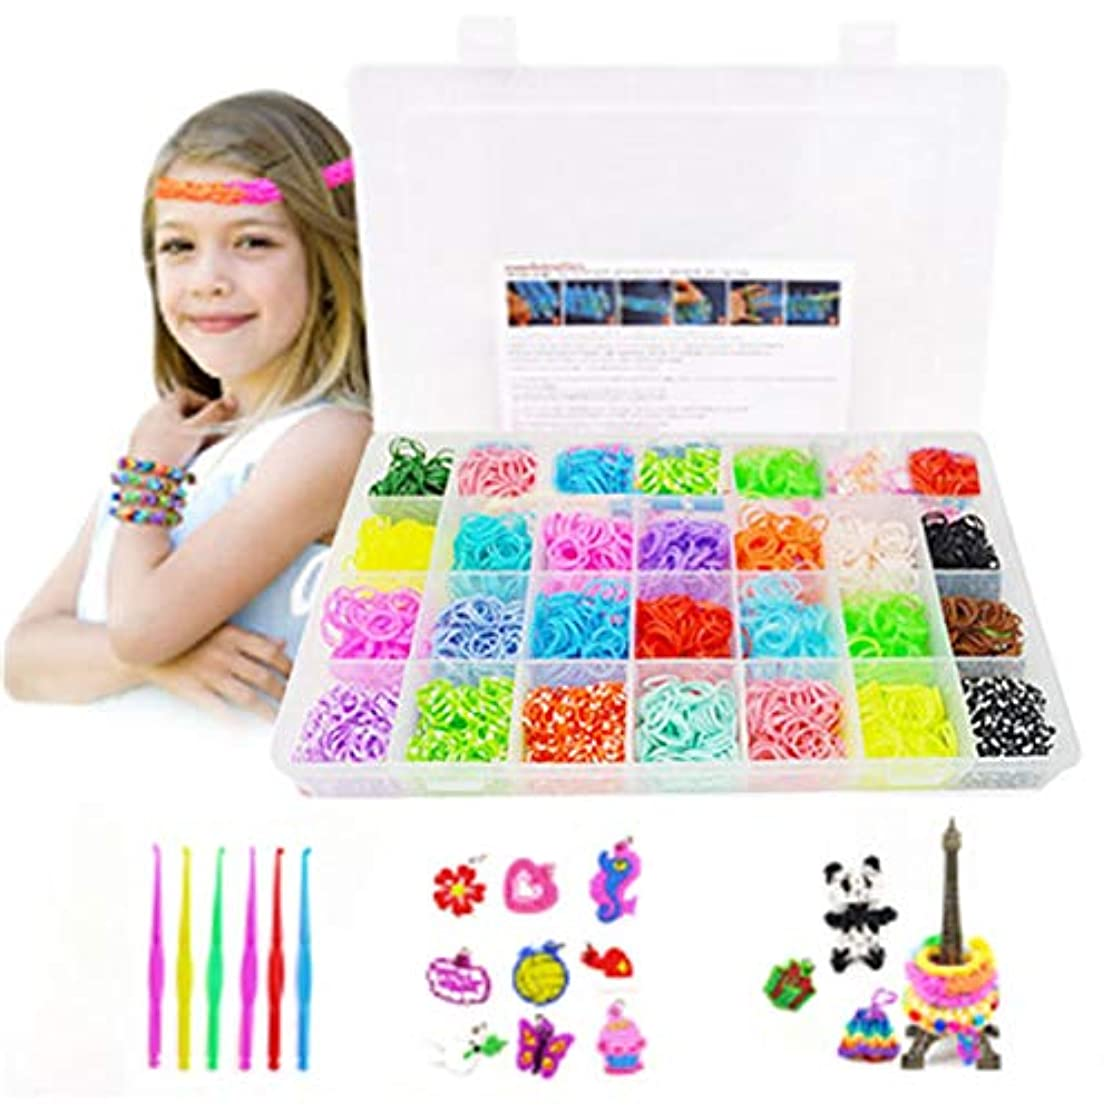 Koogel Colorful Rubber Bands Loom Set 4400 Premium Loom Bands 22 Colors,10 Pendants,6 Small Crochets,48 S Buckles,Organizer for DIY Jewelry Dolls Hats Skirts